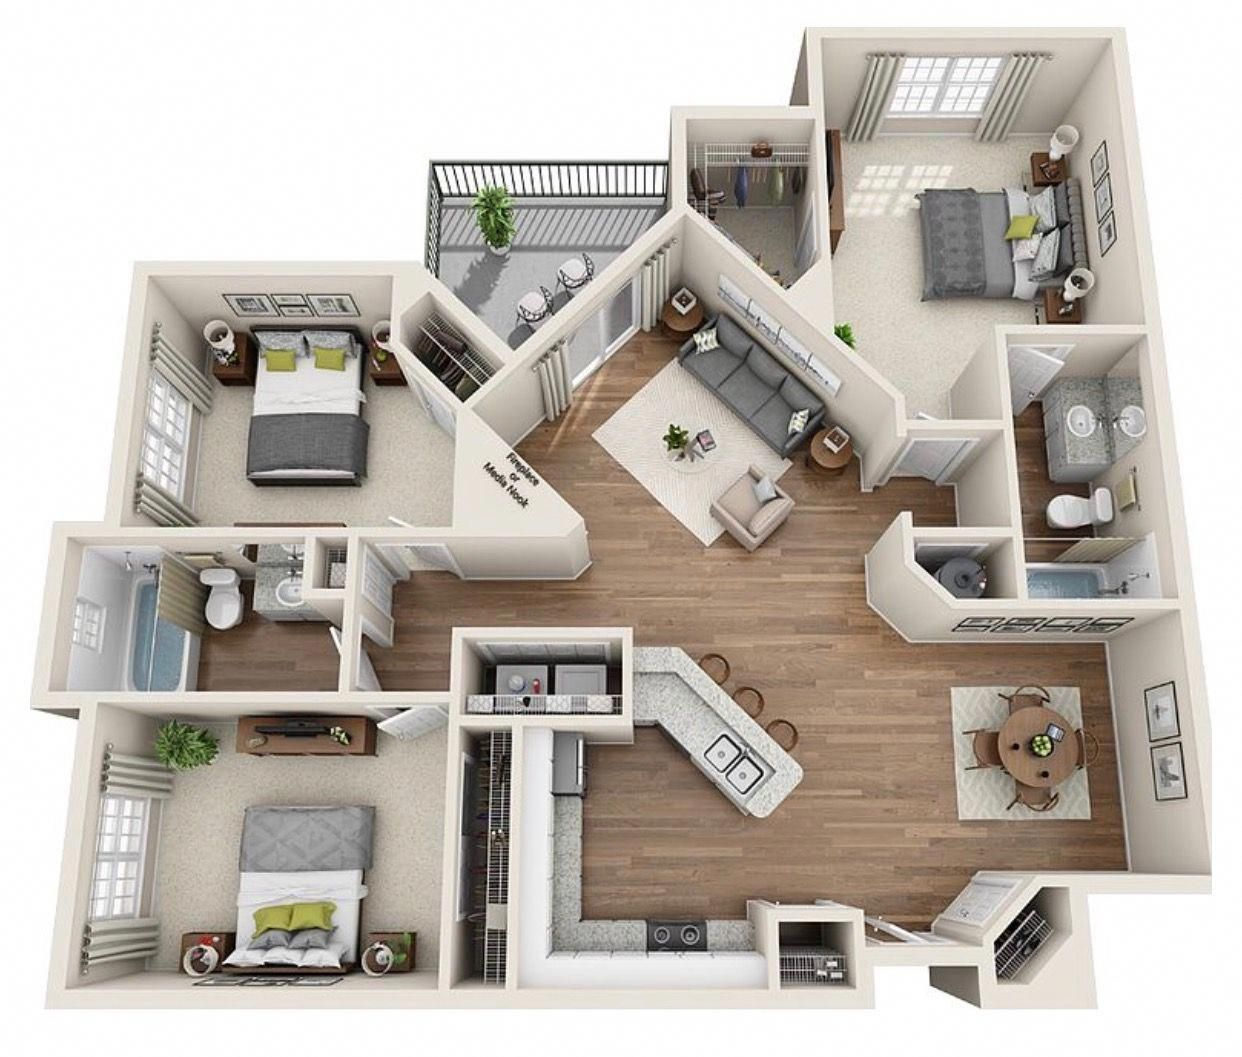 Buildaviary Sims House Plans House Plans House Layouts